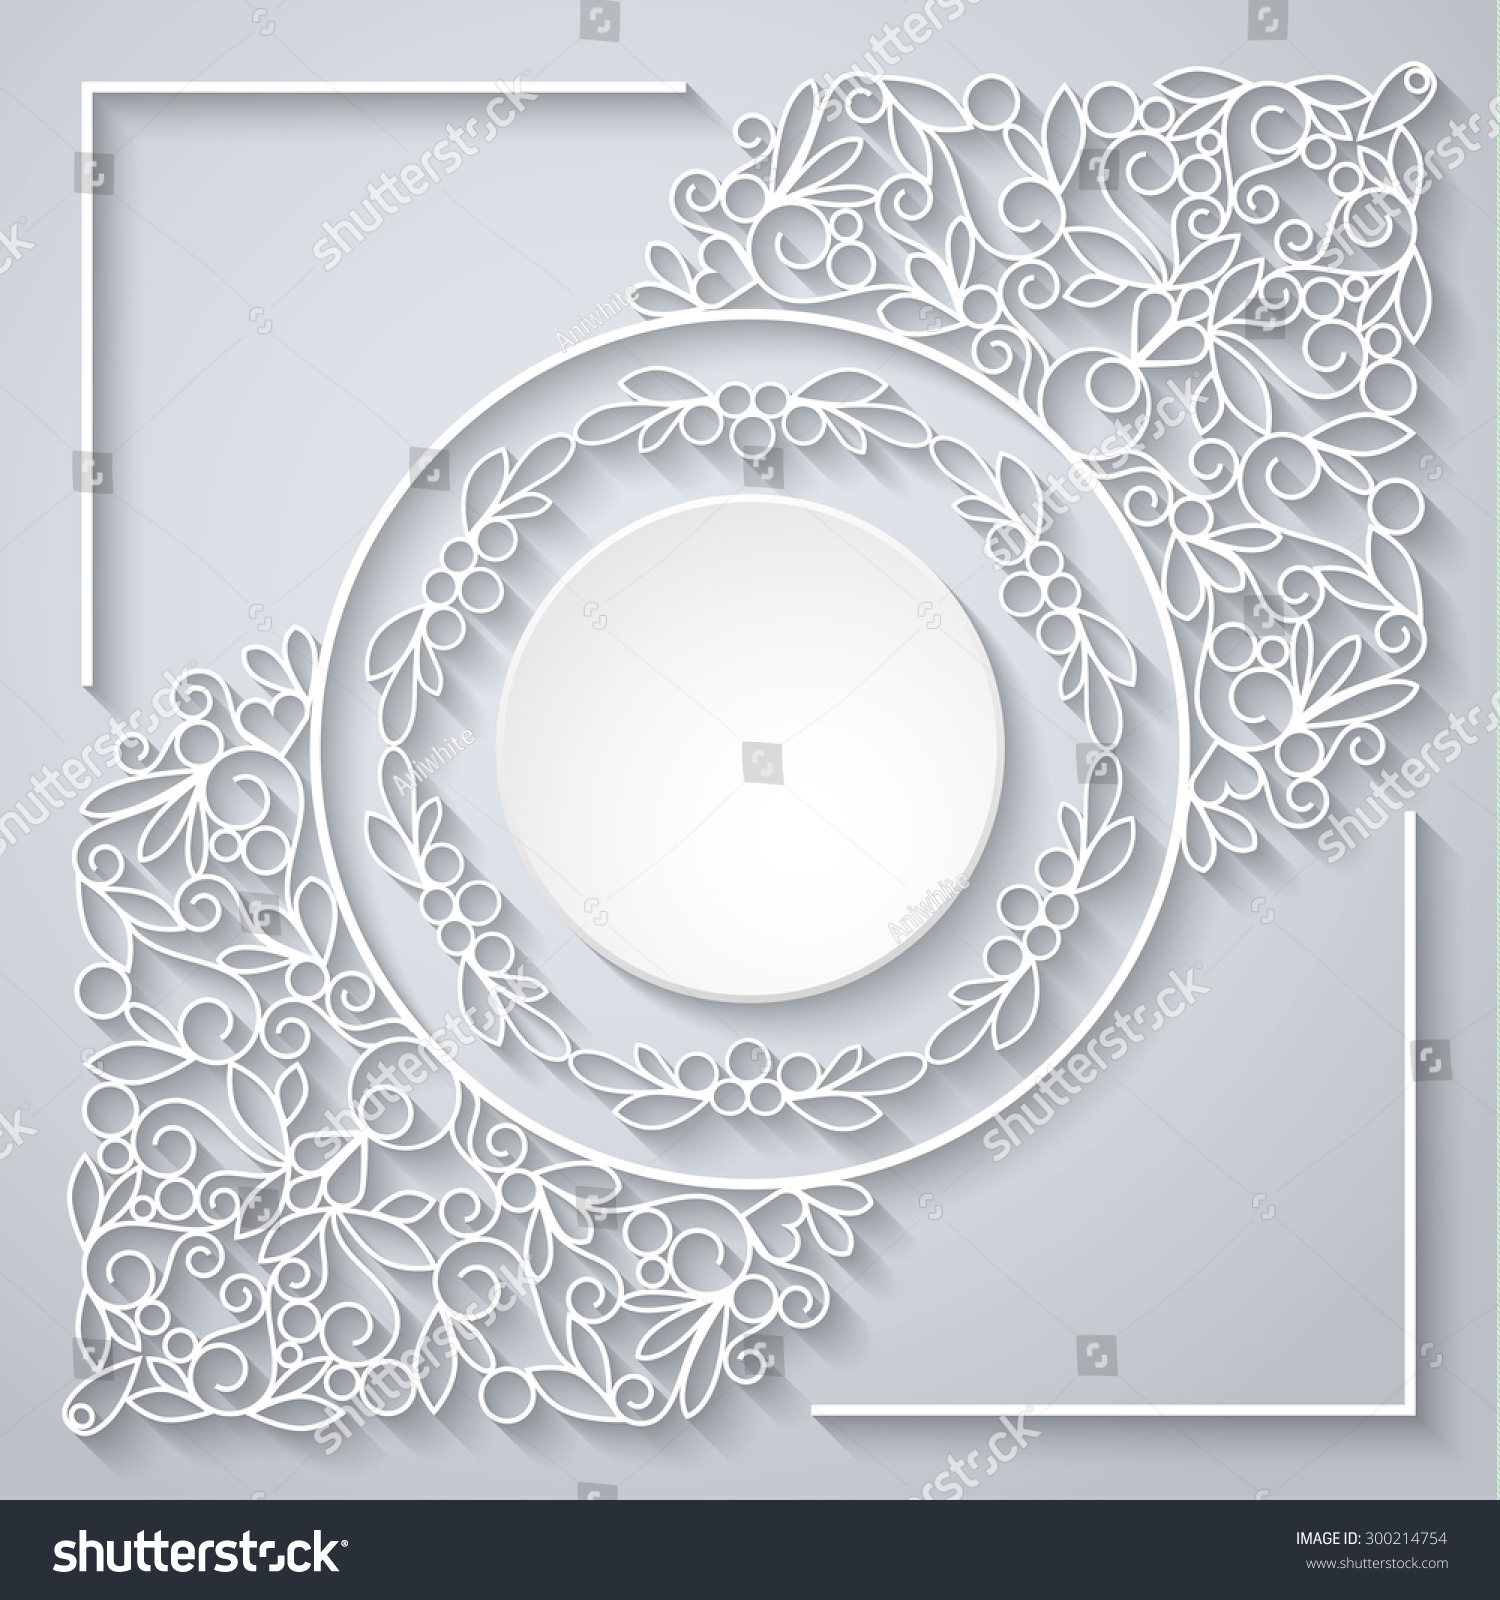 Swirly Paper Decor With Shadow On White Stock Photo